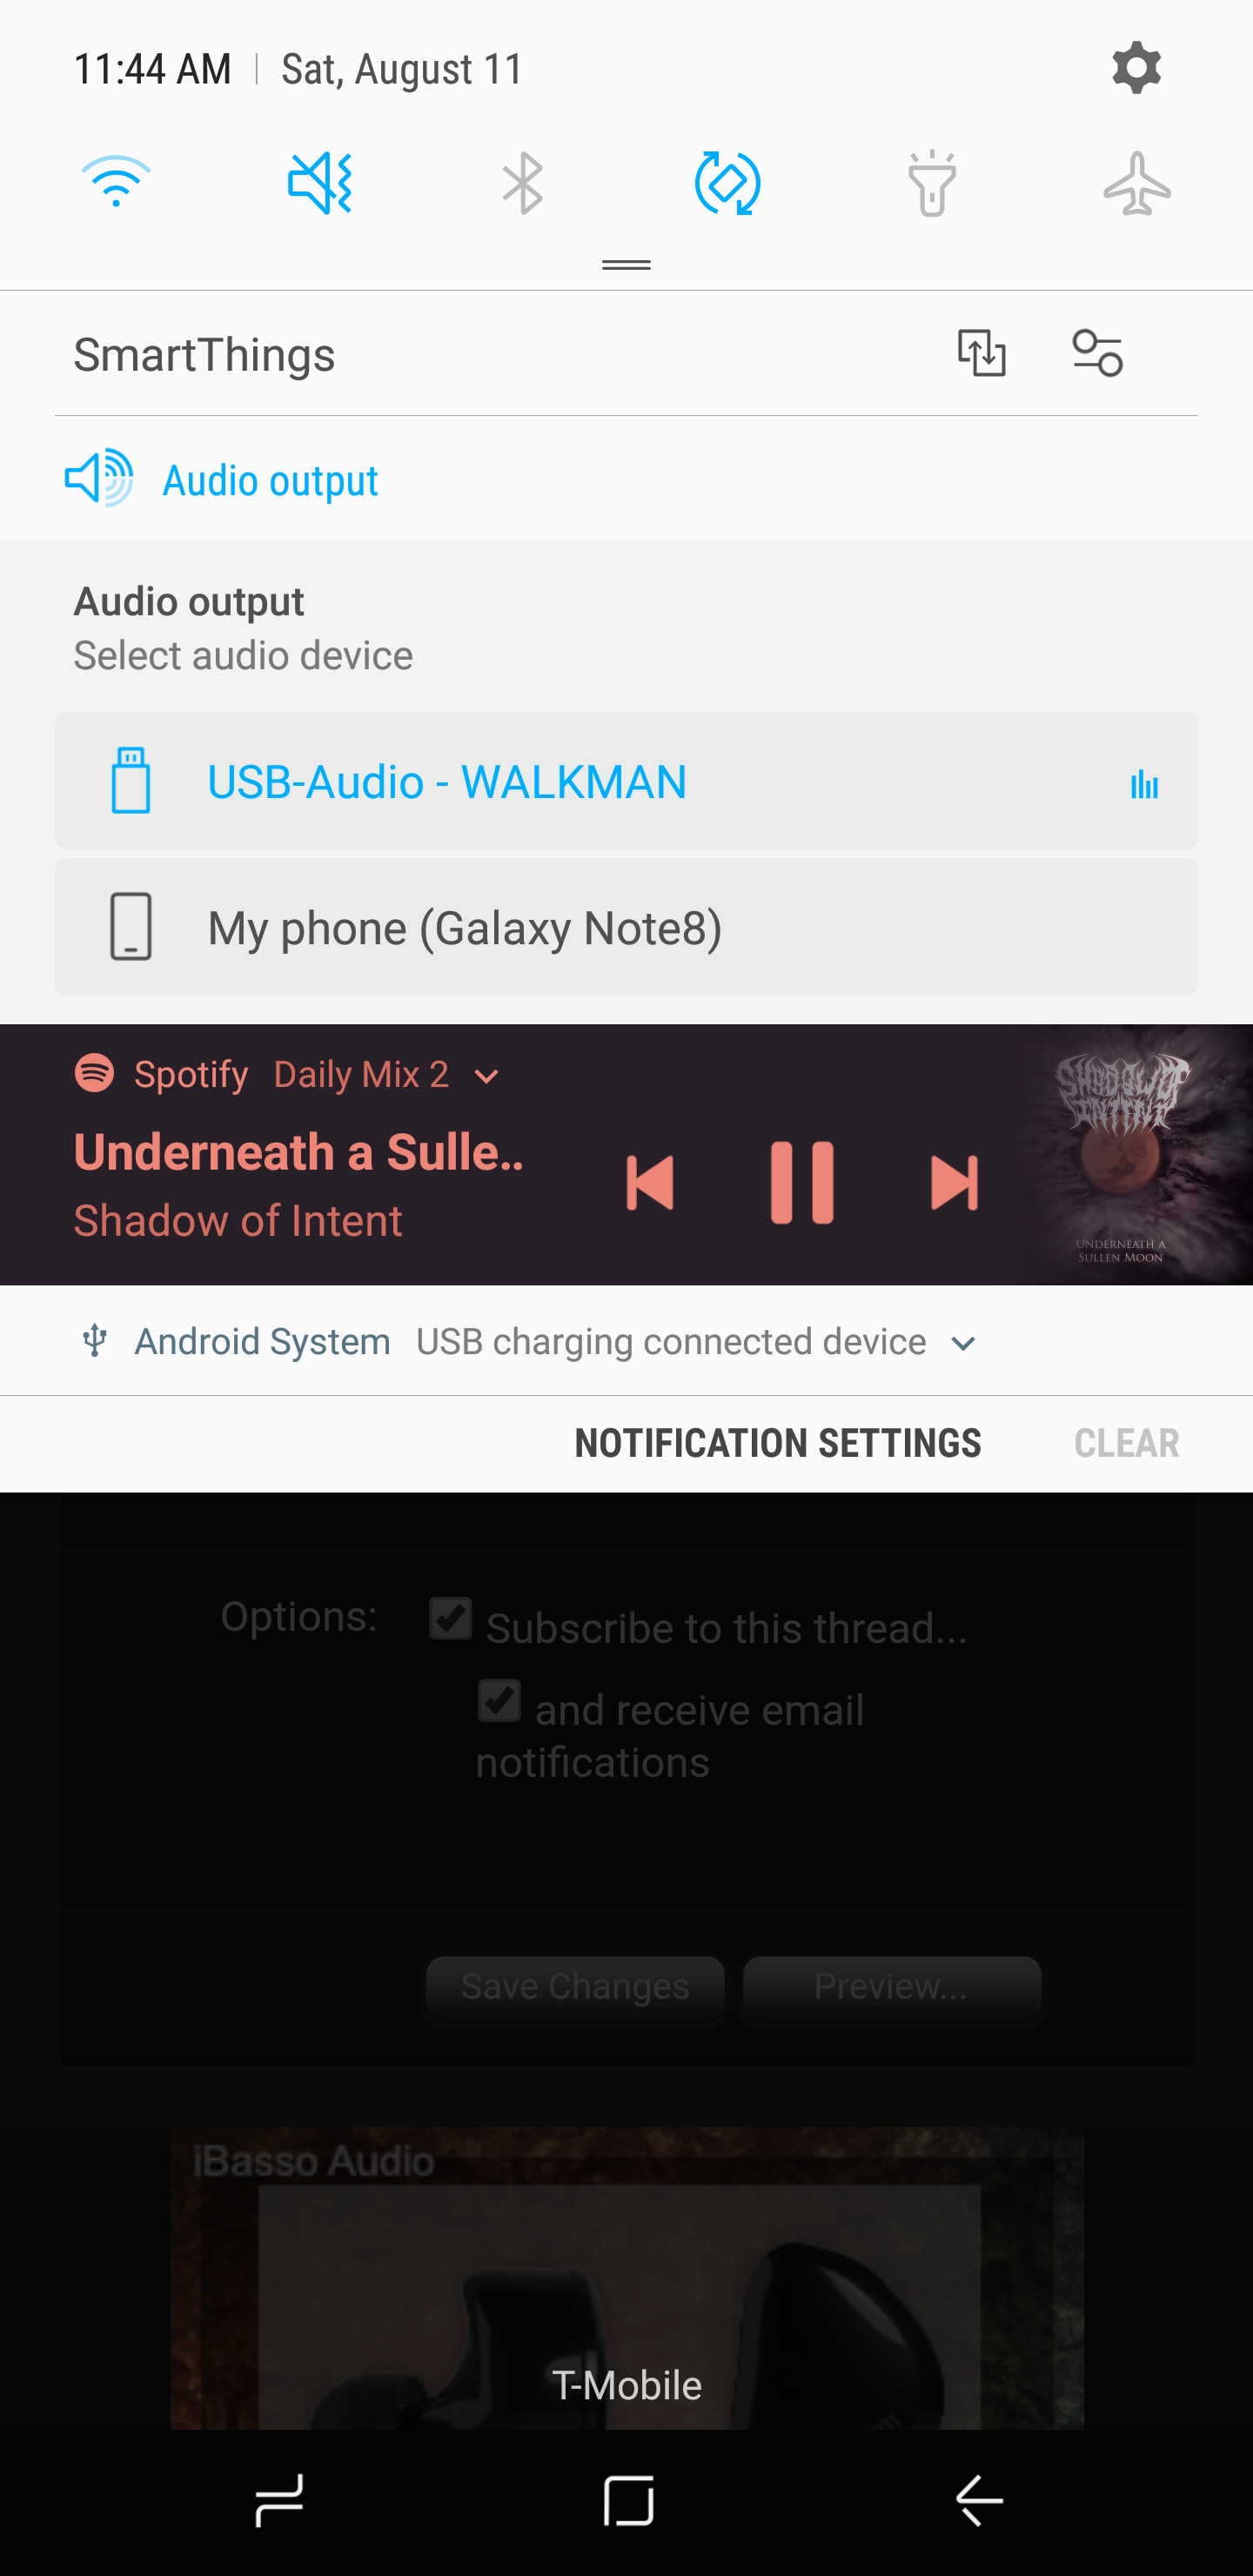 Official Samsung galaxy note 8 thread sound quality is great